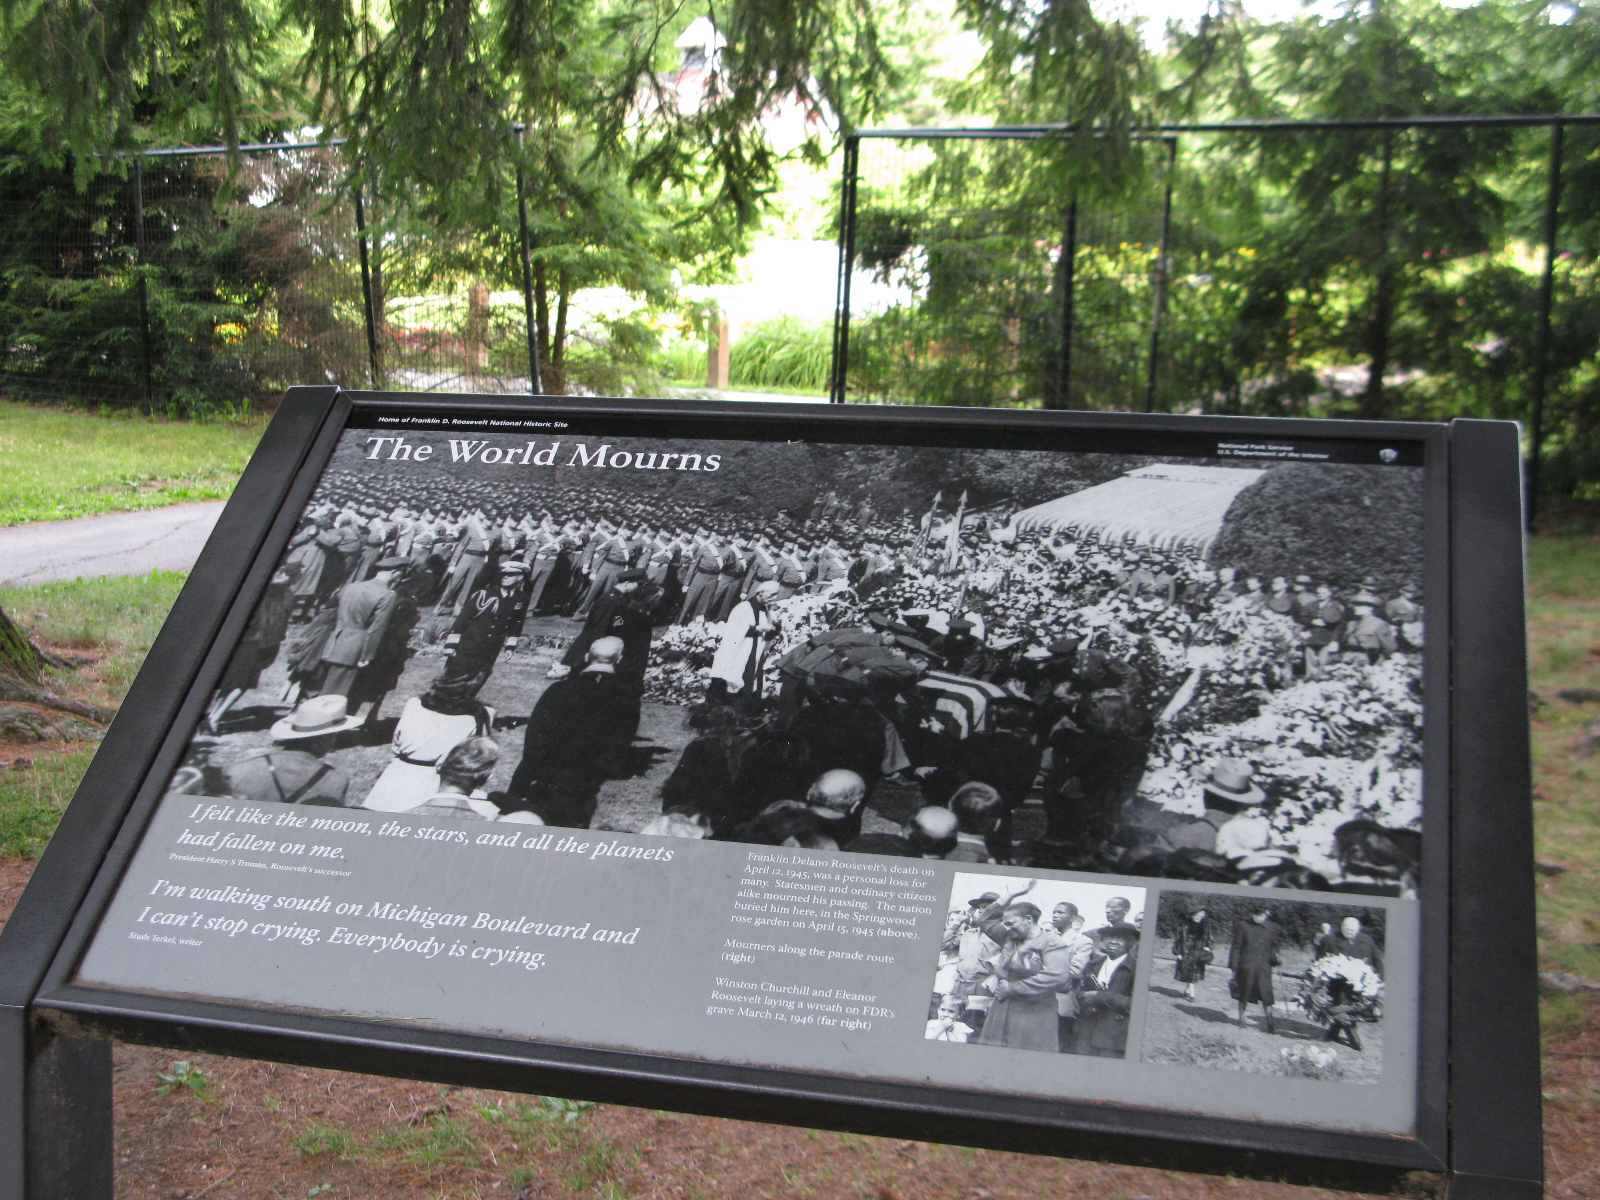 Informational plaque about the Roosevelt's Rose Garden, Home of FDR National Historic Site